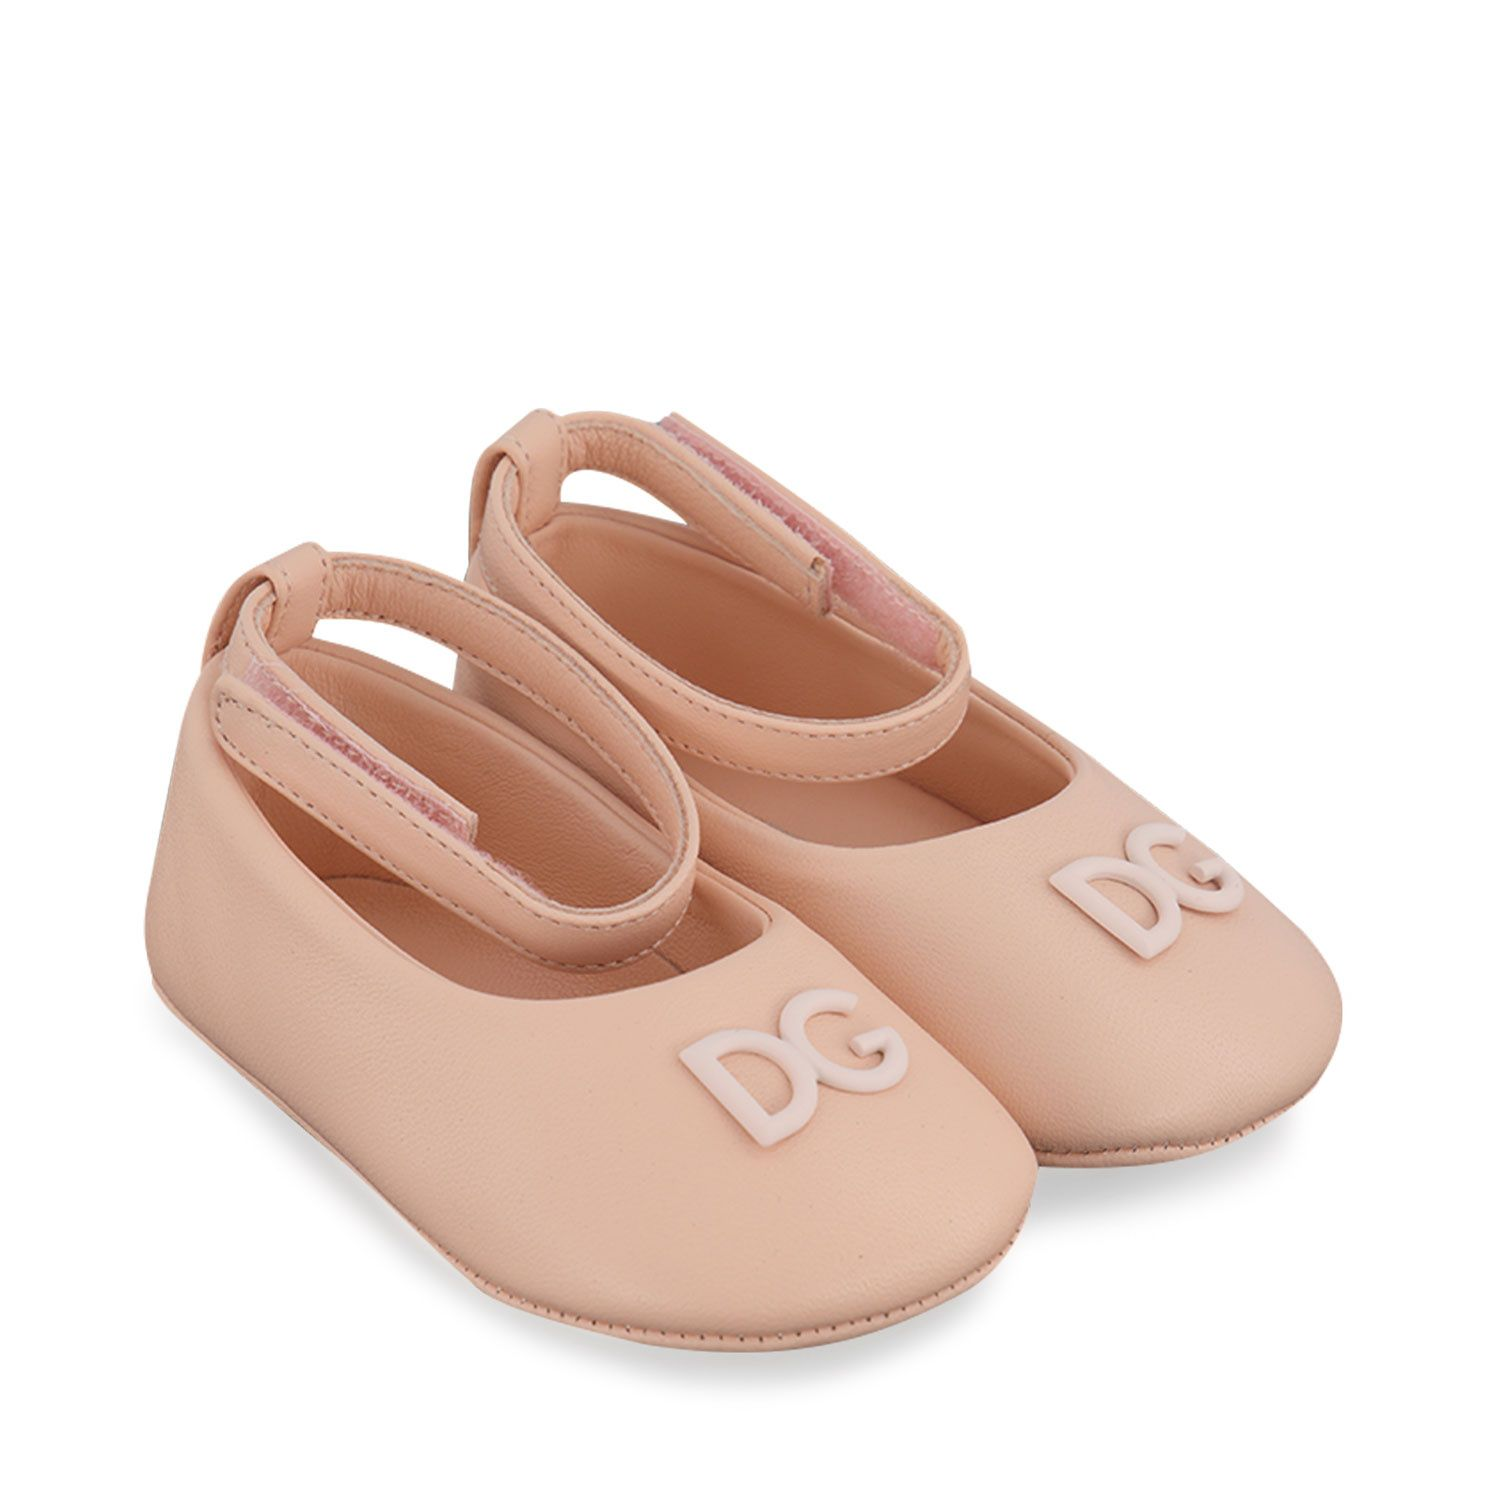 Picture of Dolce & Gabbana DK0065 A1293 baby shoes light pink